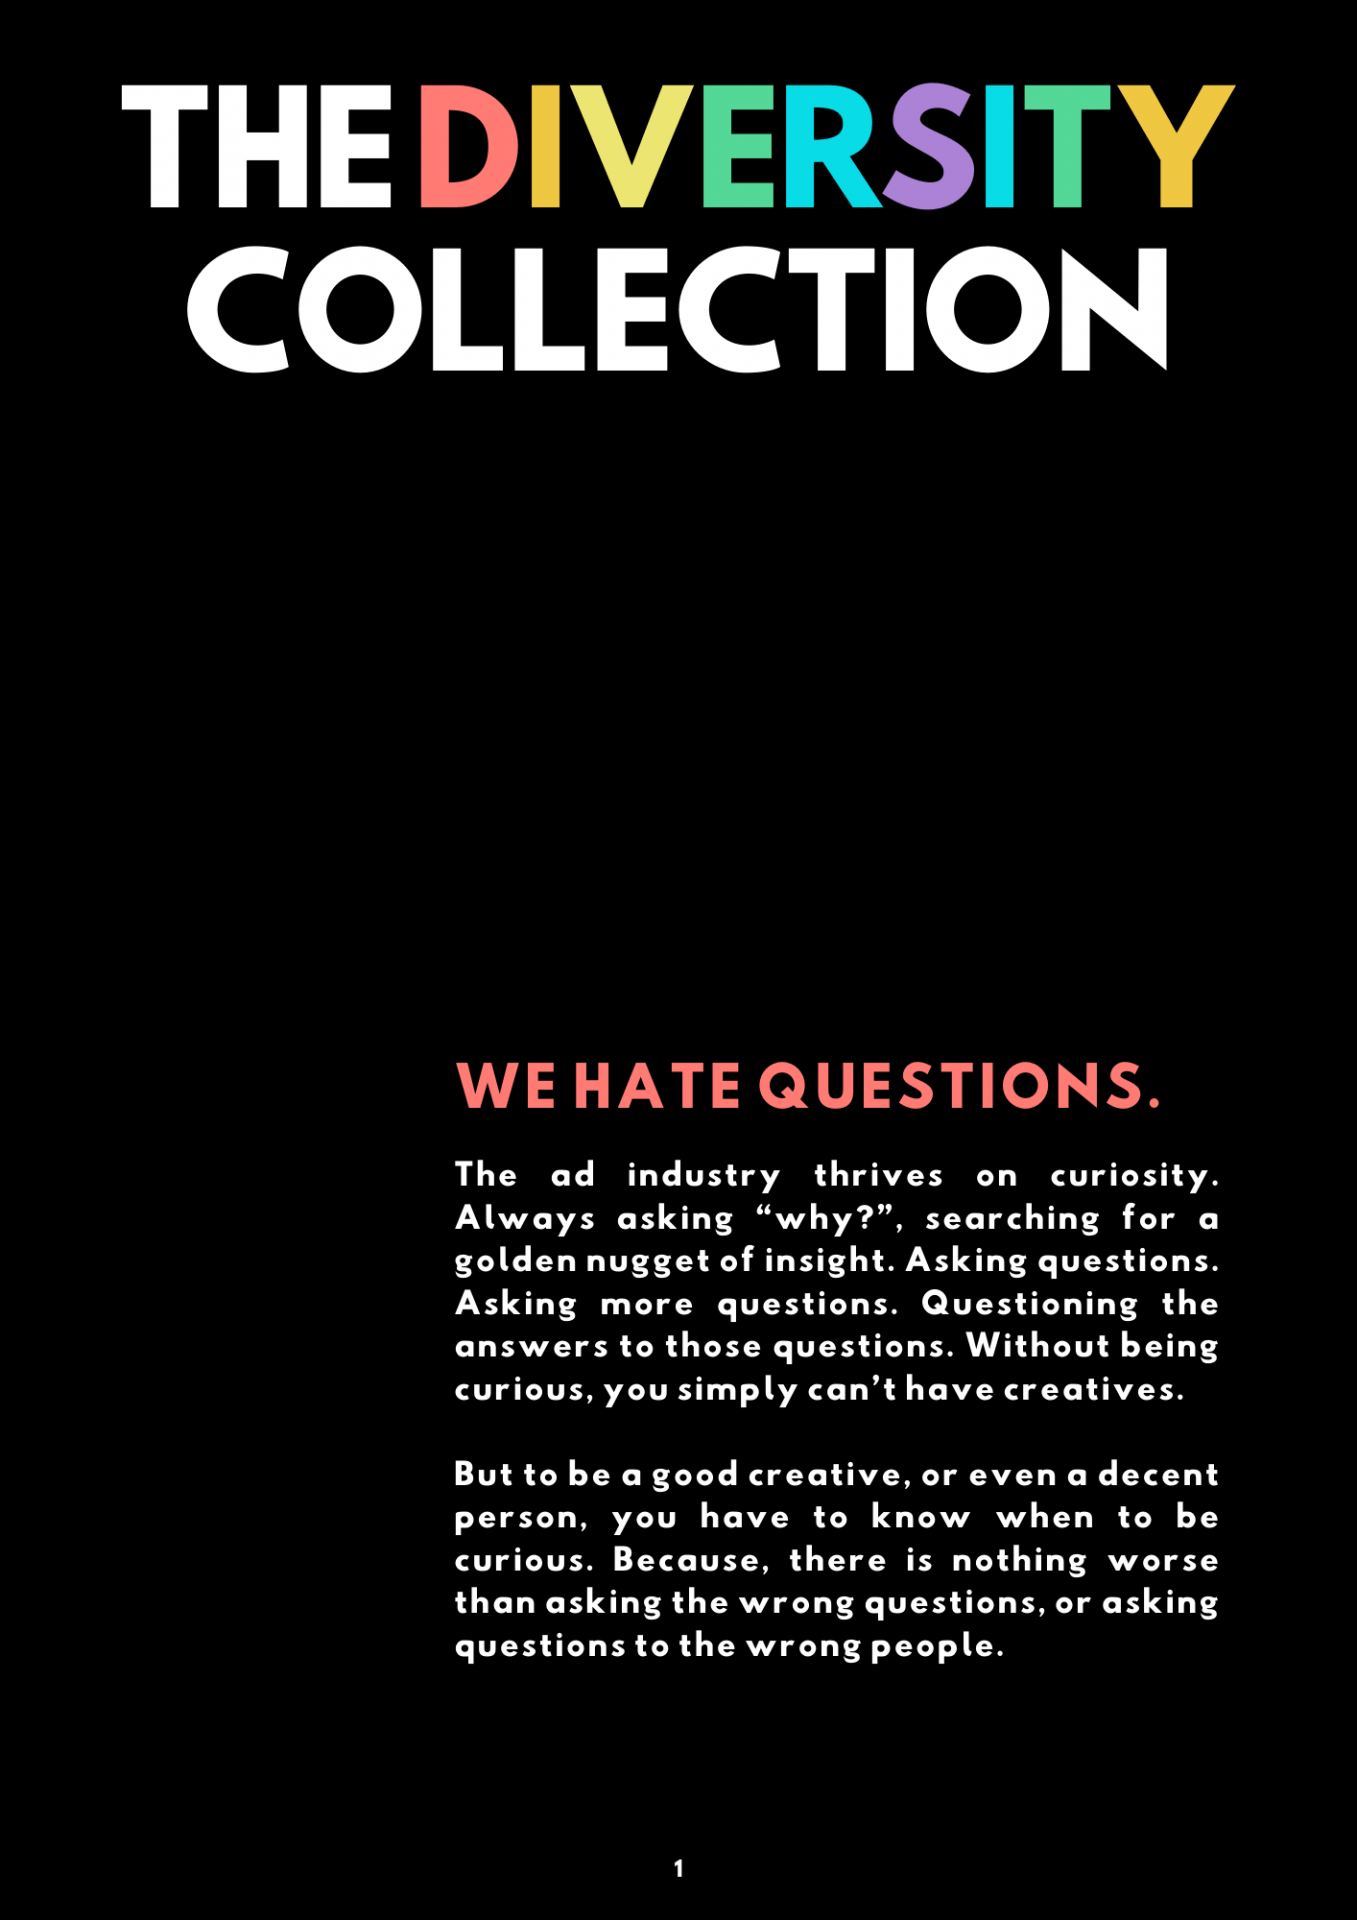 Image of page one of The Diversity Collection's Introduction.